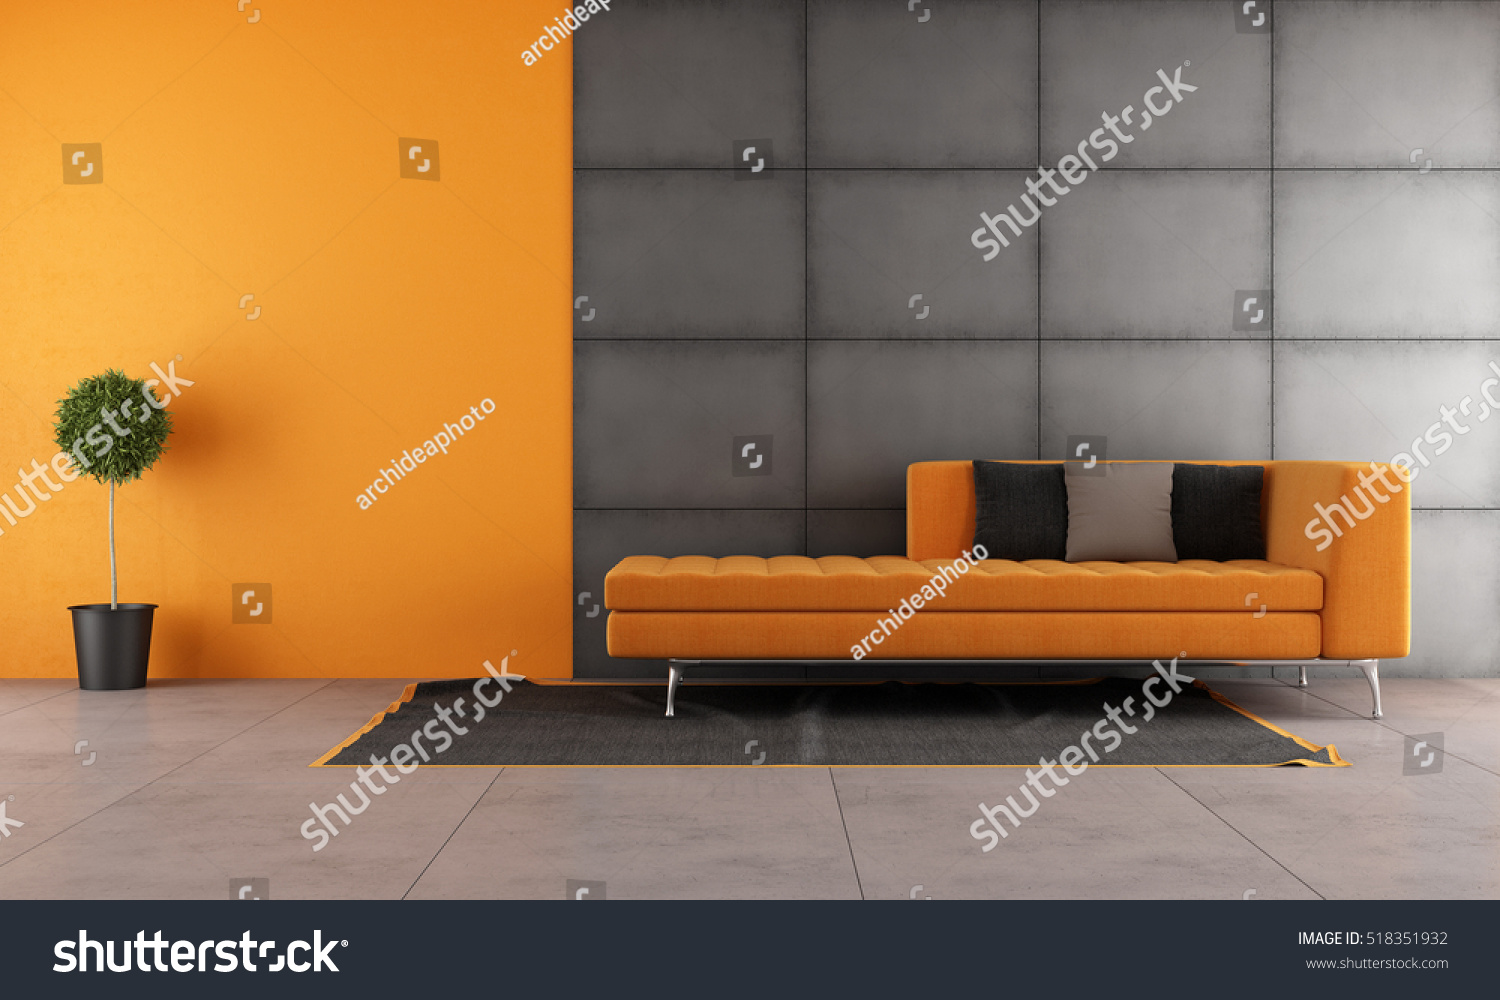 Black And Orange Living Room With Contemporary Sofa   3d Rendering